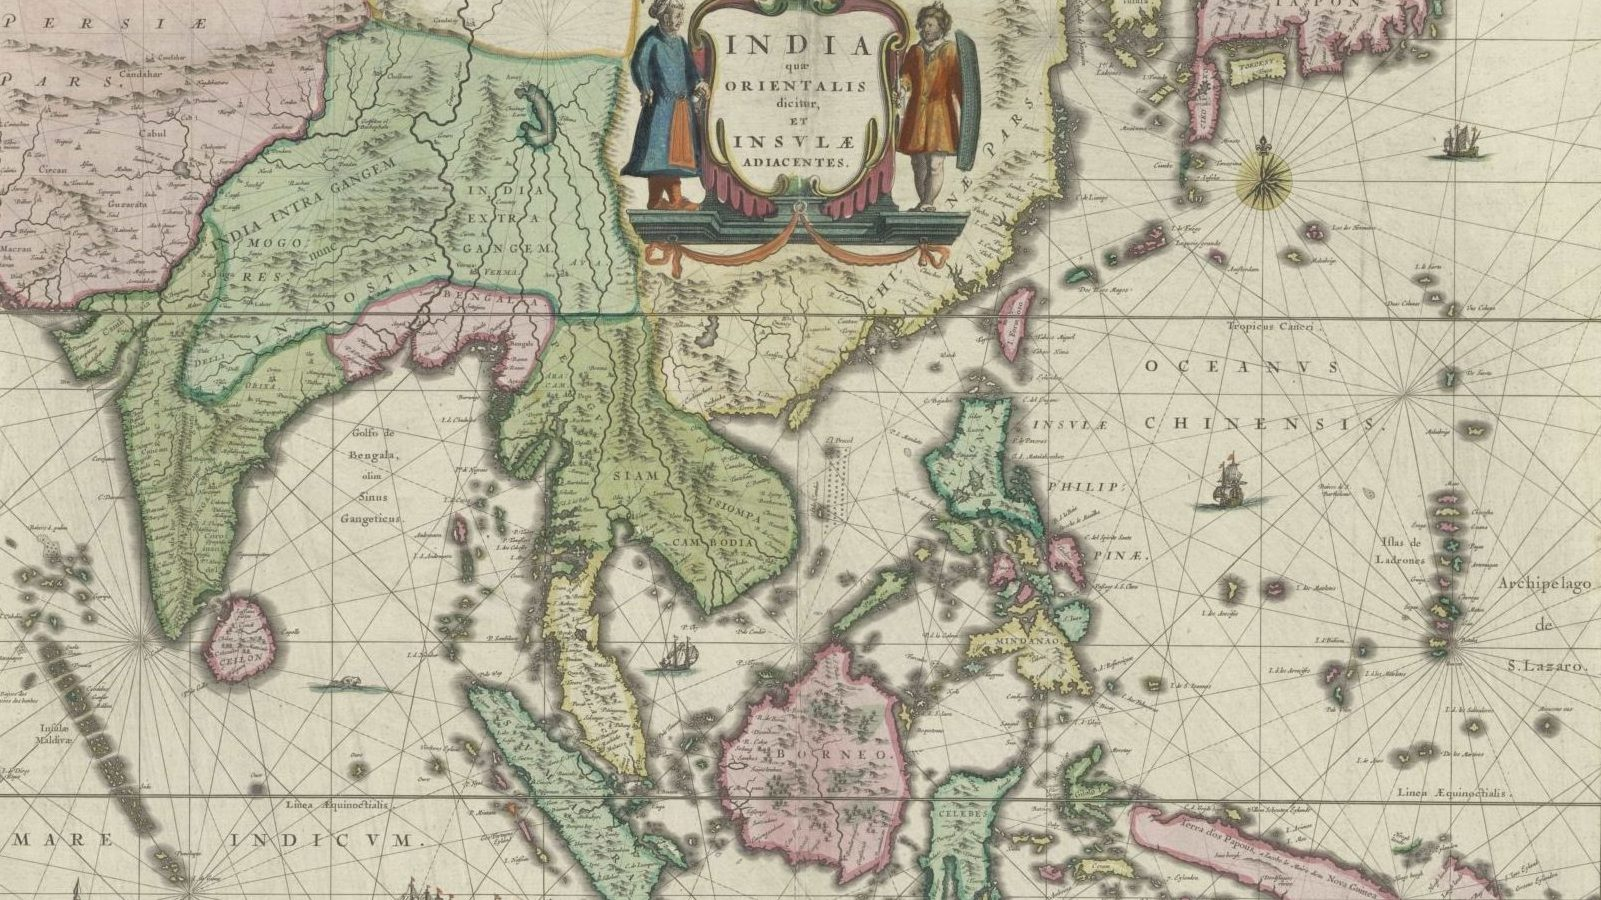 1635 Map of India